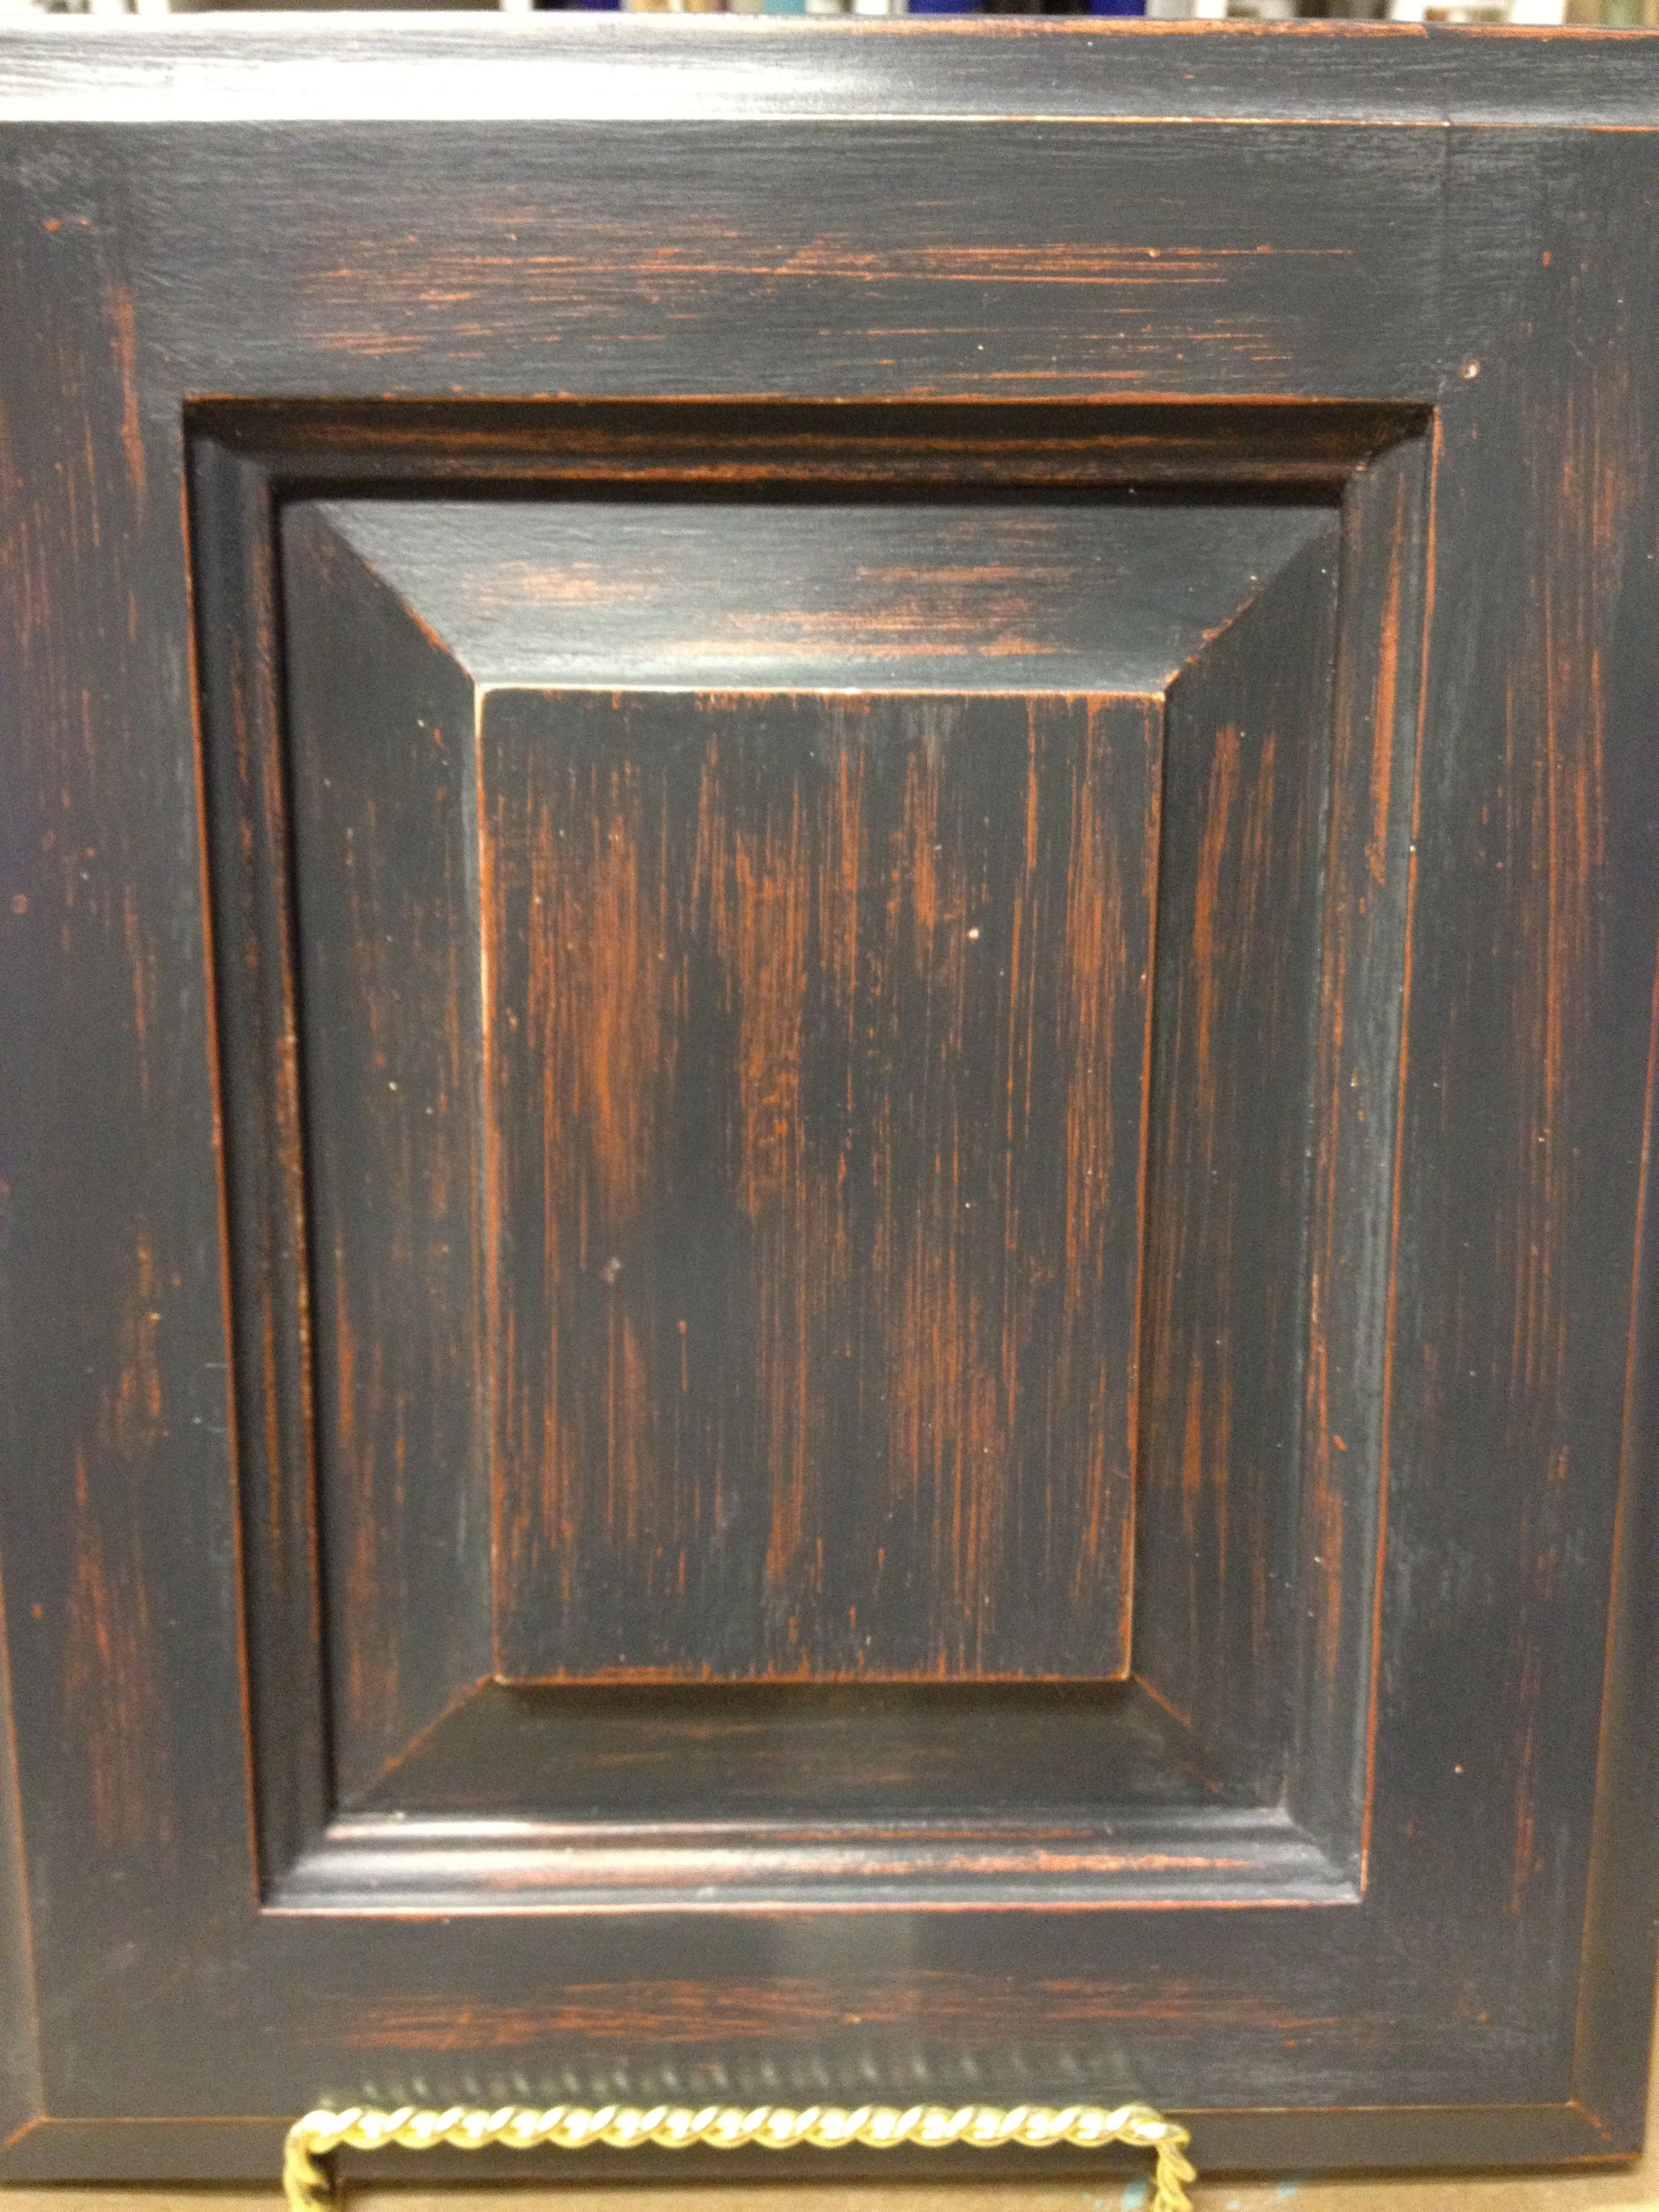 Cabinet door makeover painted with Chalk Paint® in Graphite over Copper metallic paint then sand distressed Clear Waxed by TLC Design Studio. & Cabinet door makeover painted with Chalk Paint® in Graphite over ...